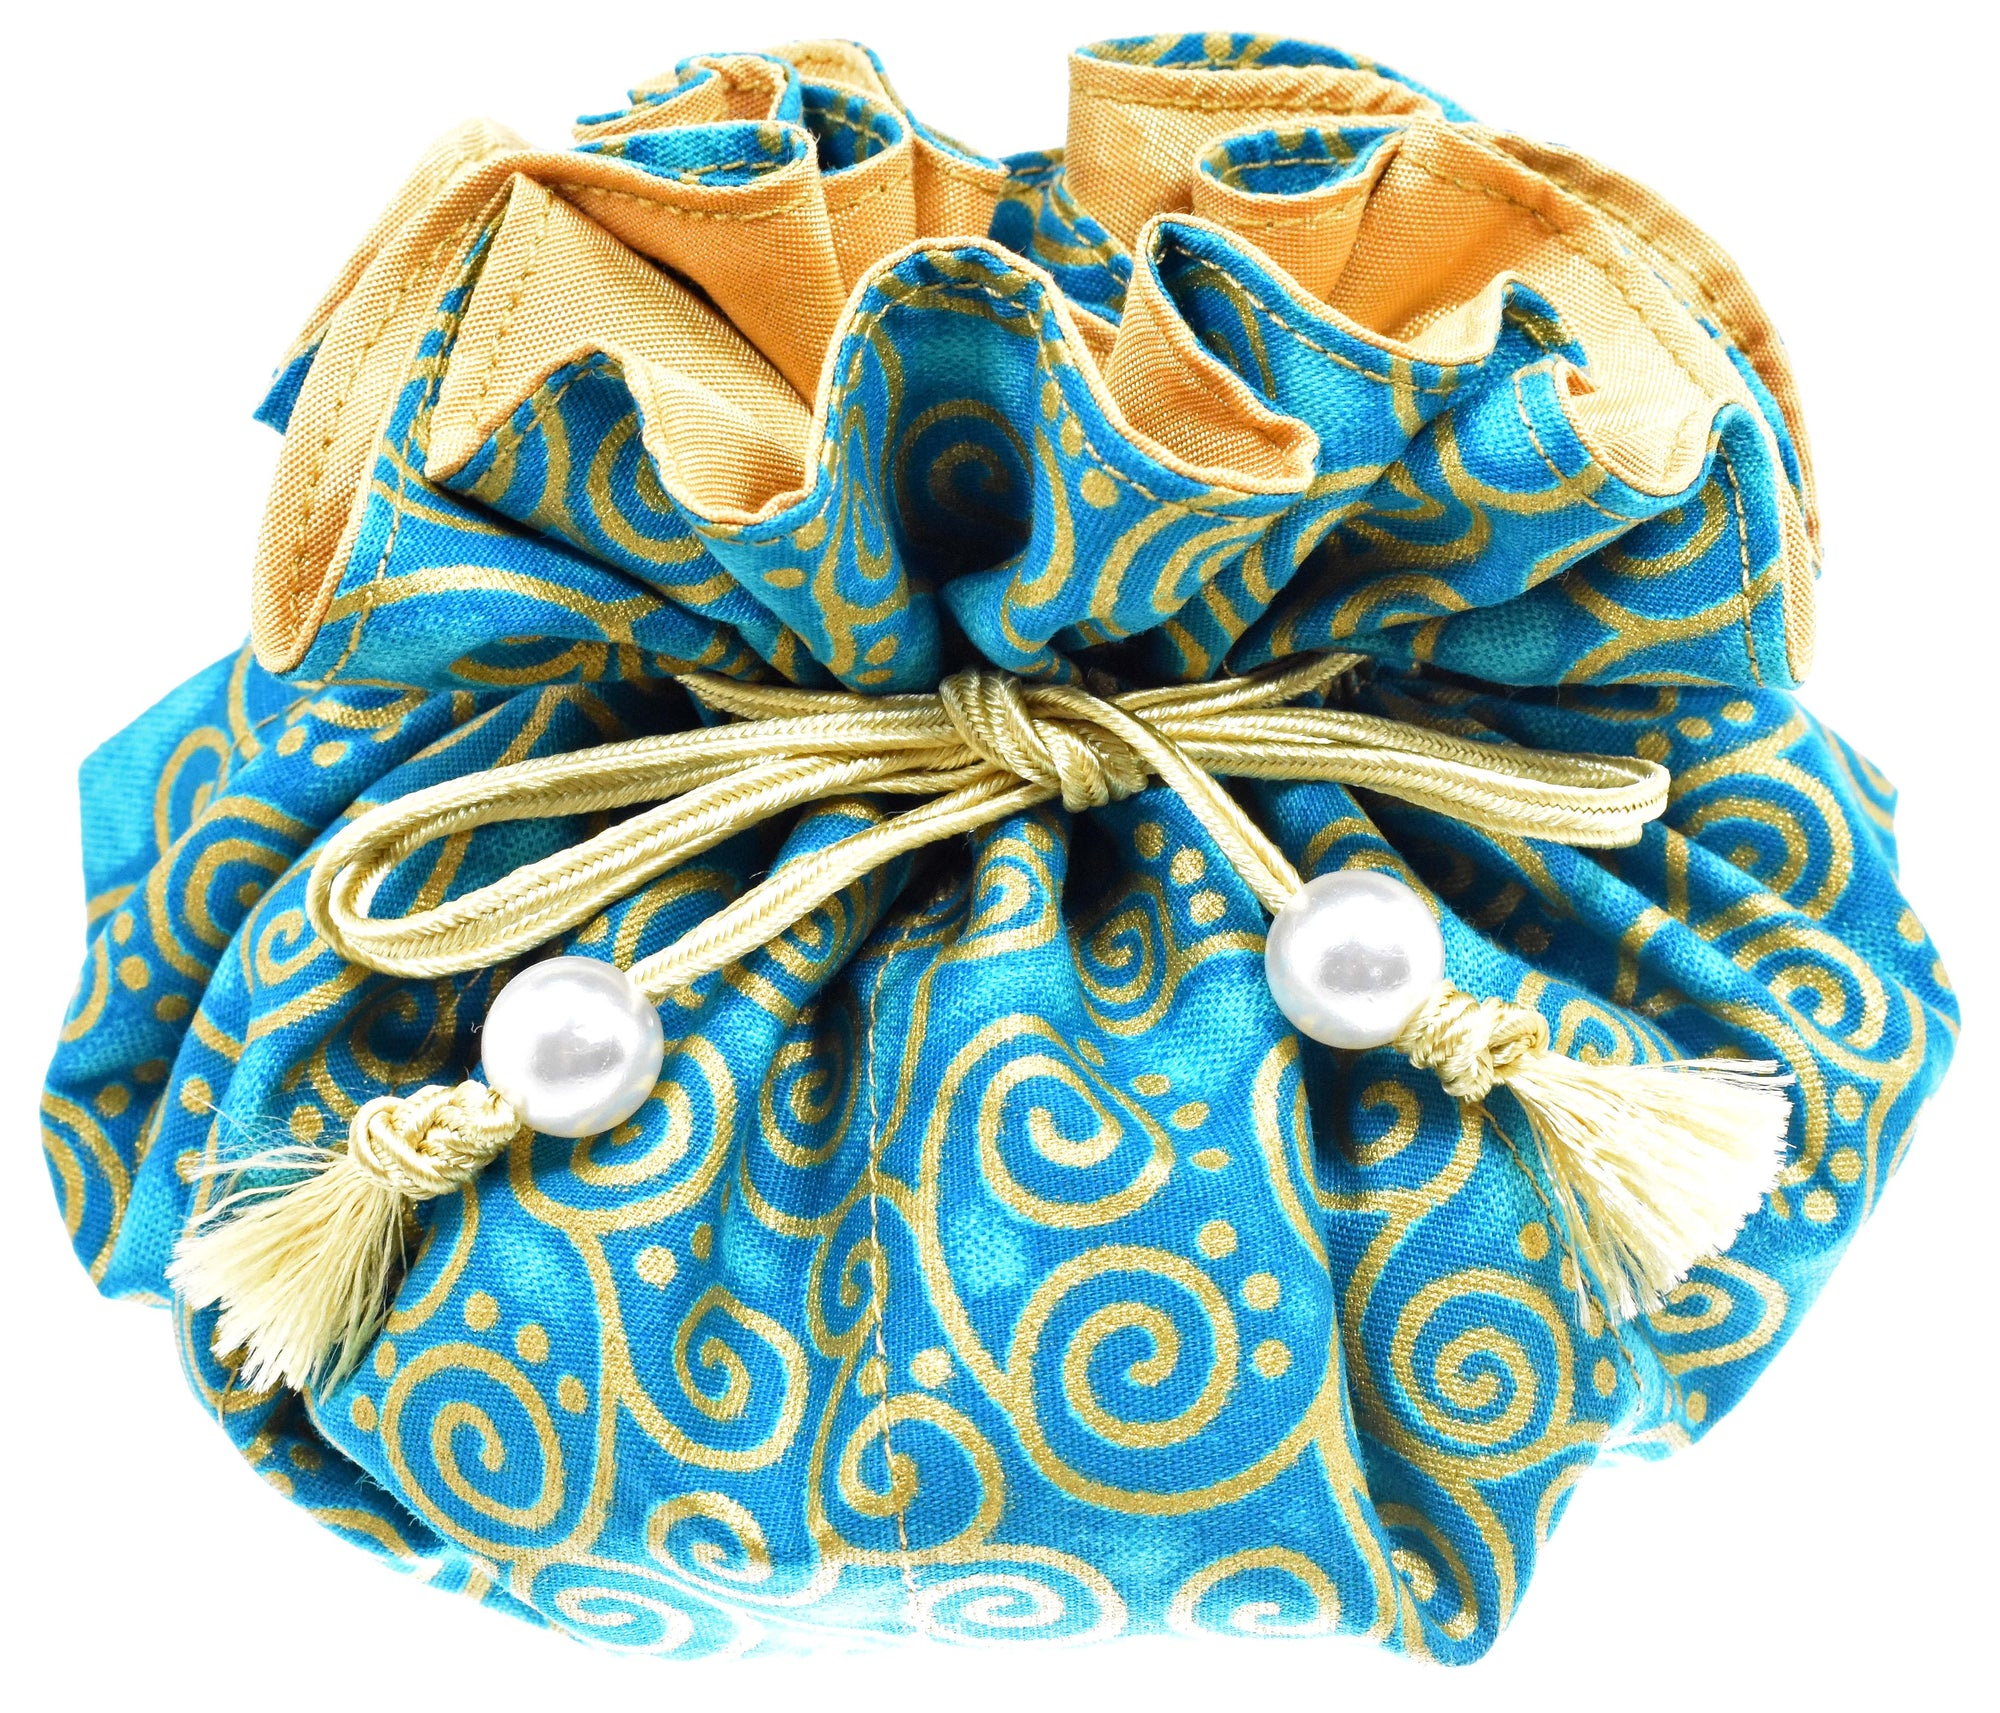 Cotton Jewelry Pouch, 8 Pockets, Large Size, Aquamarine